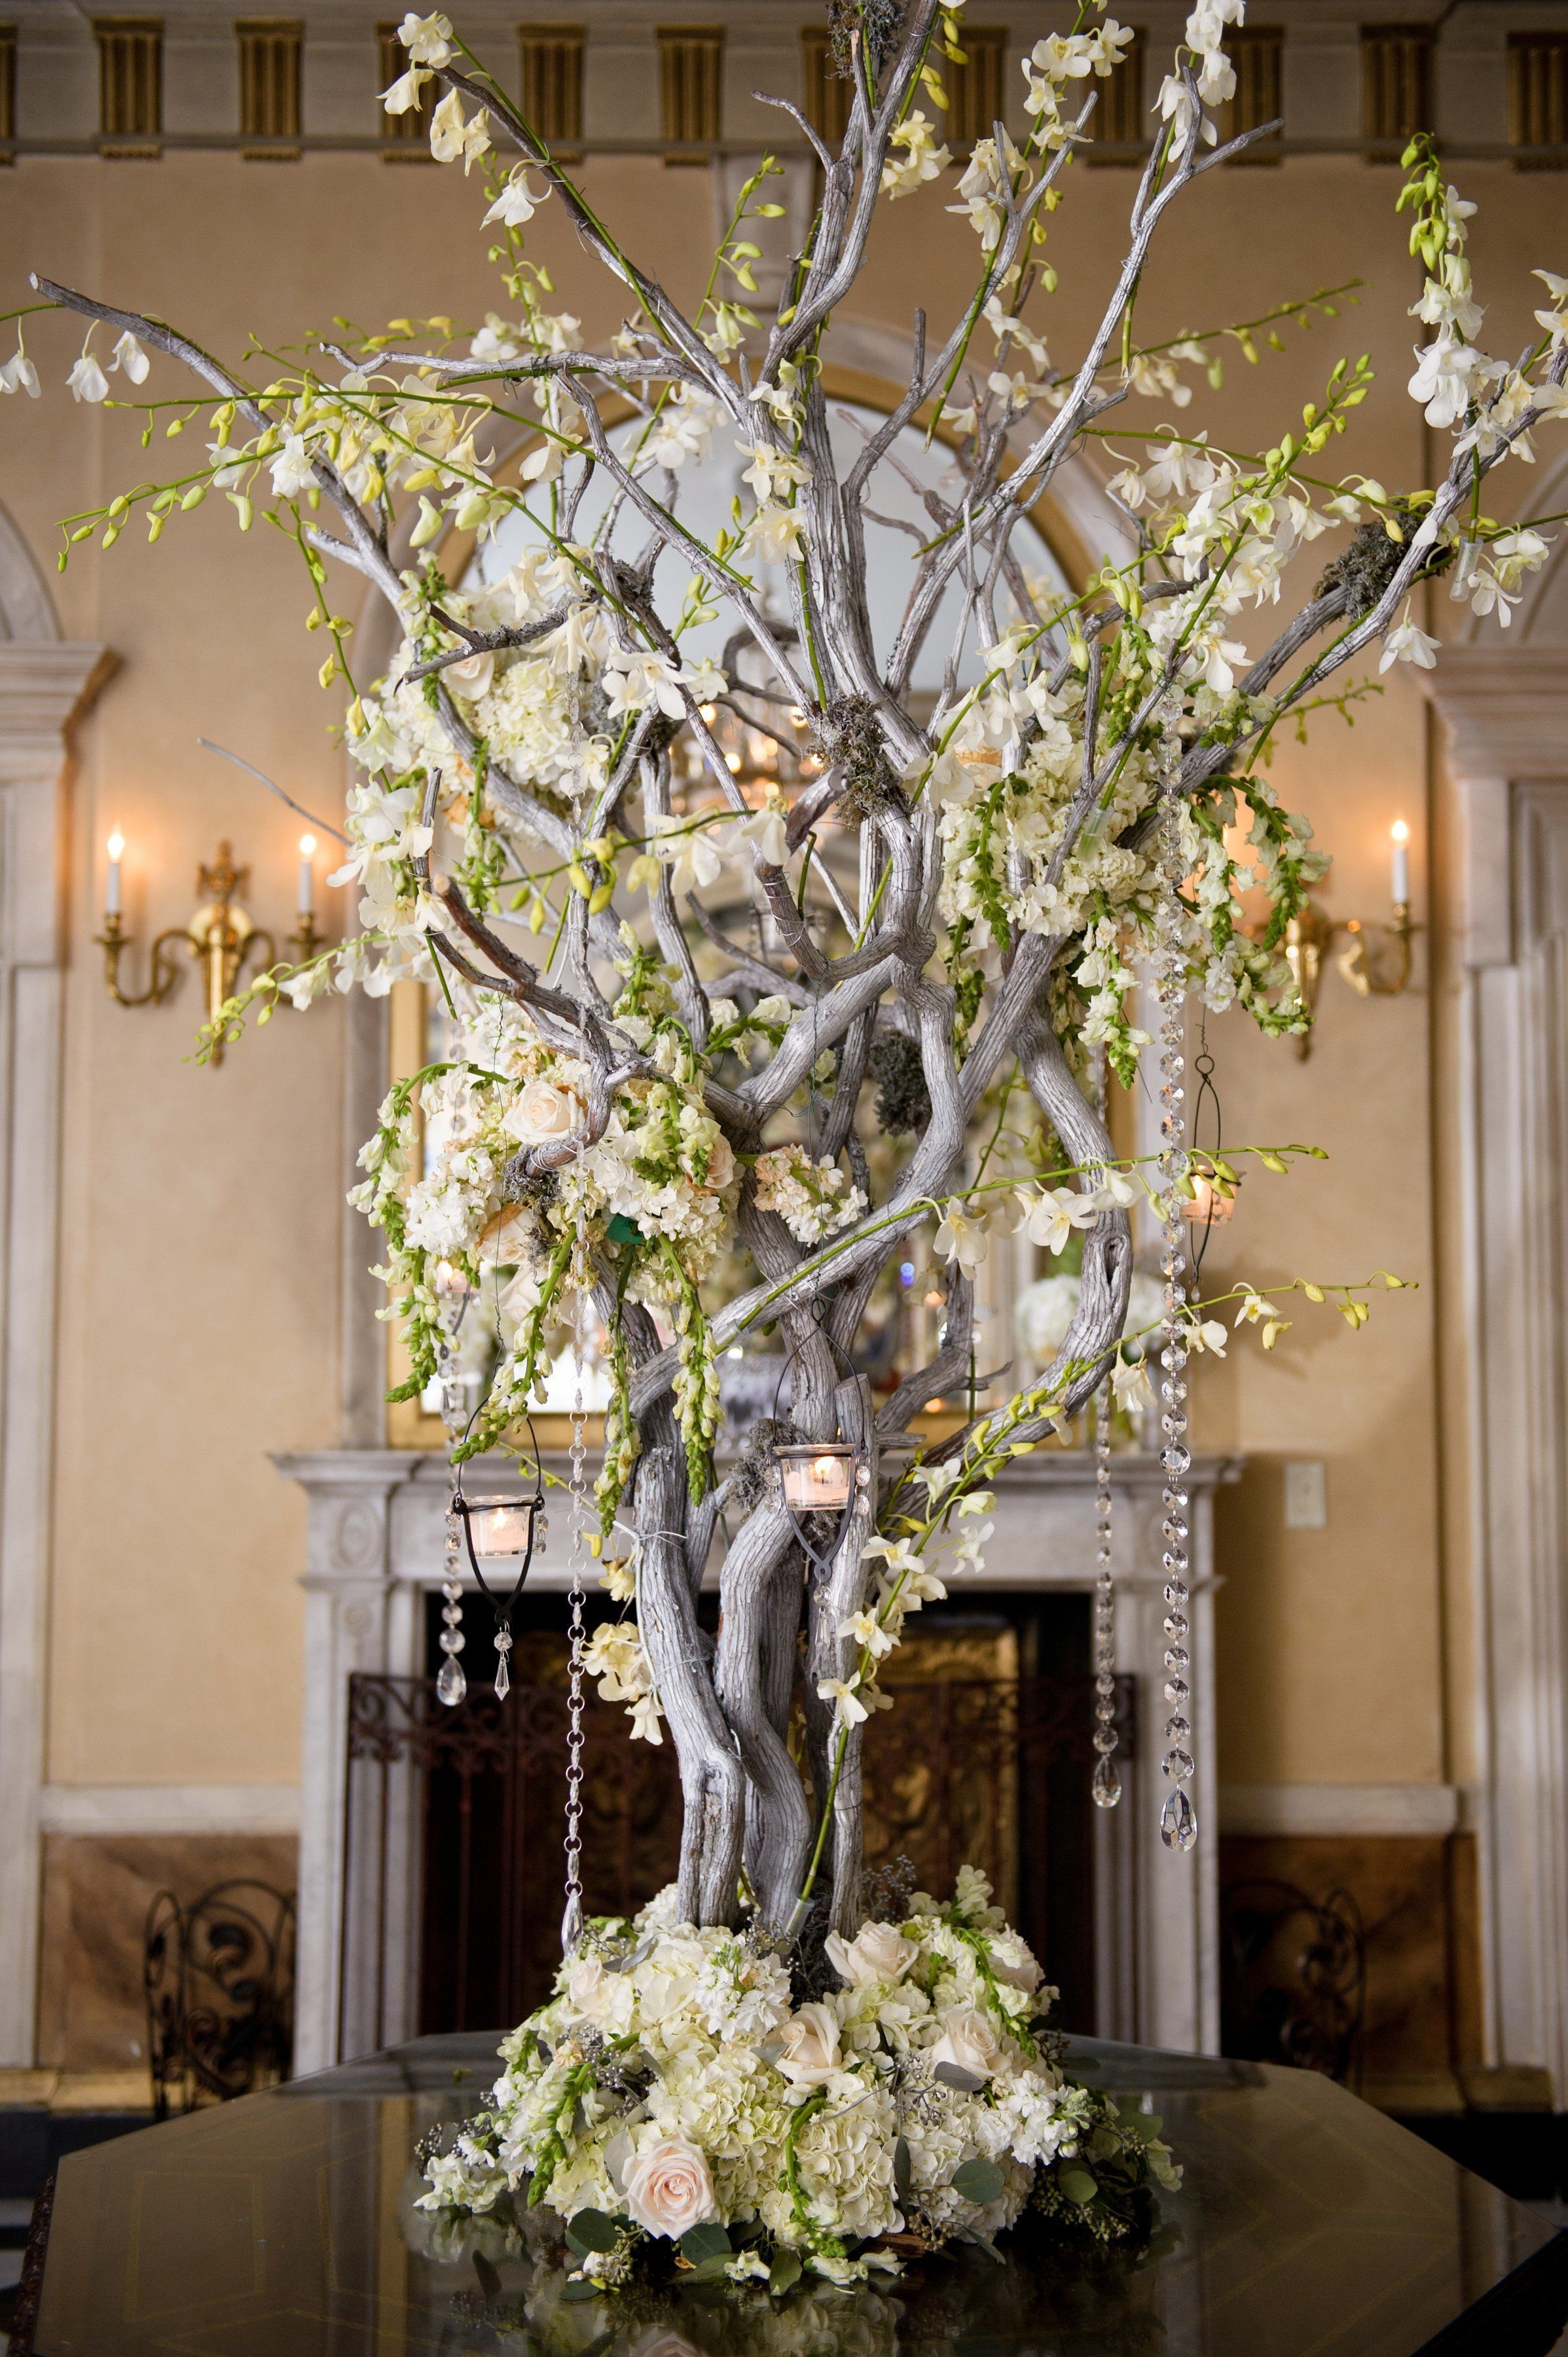 tall vase flower arrangement ideas of decorative branches for weddings awesome tall vase centerpiece ideas throughout decorative branches for weddings best of a tall arrangement of manzanita branches dripping with white blooms